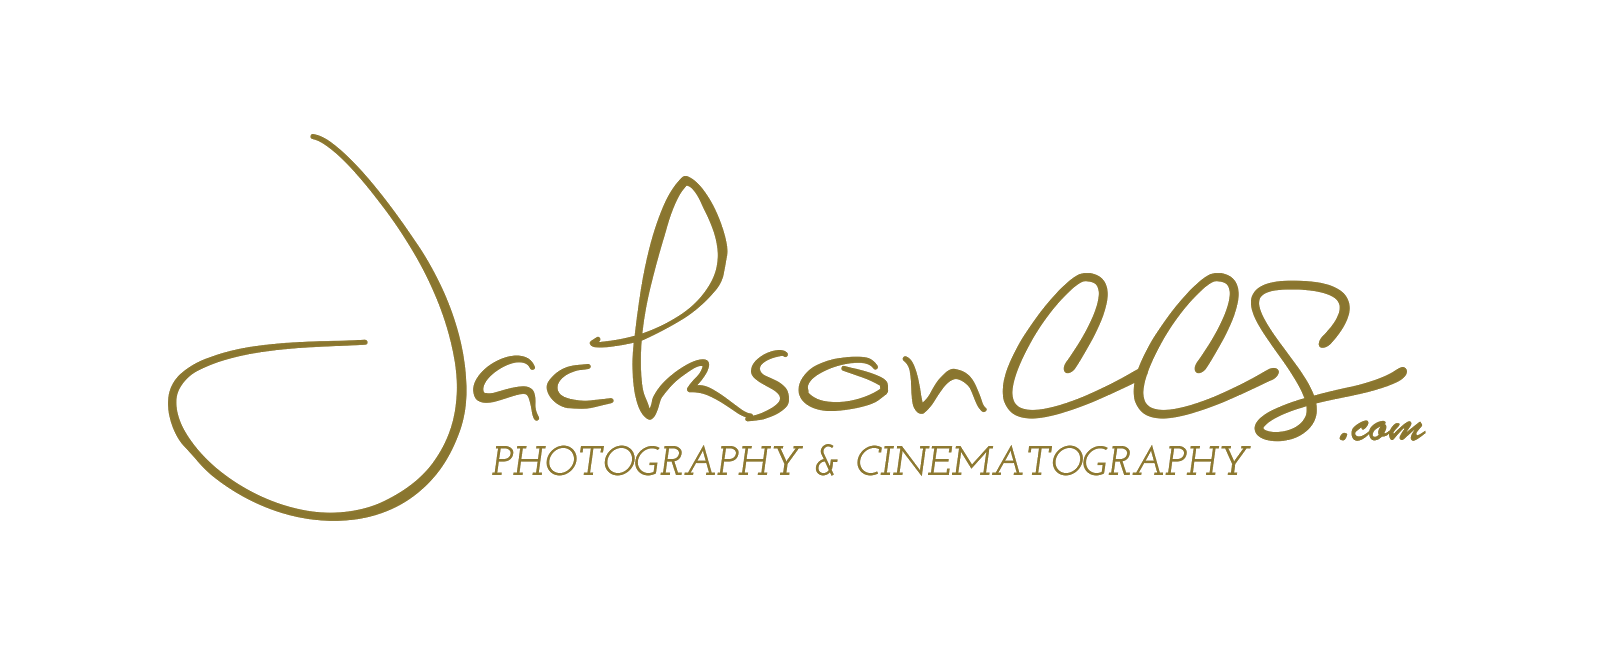 JacksonCCS photography